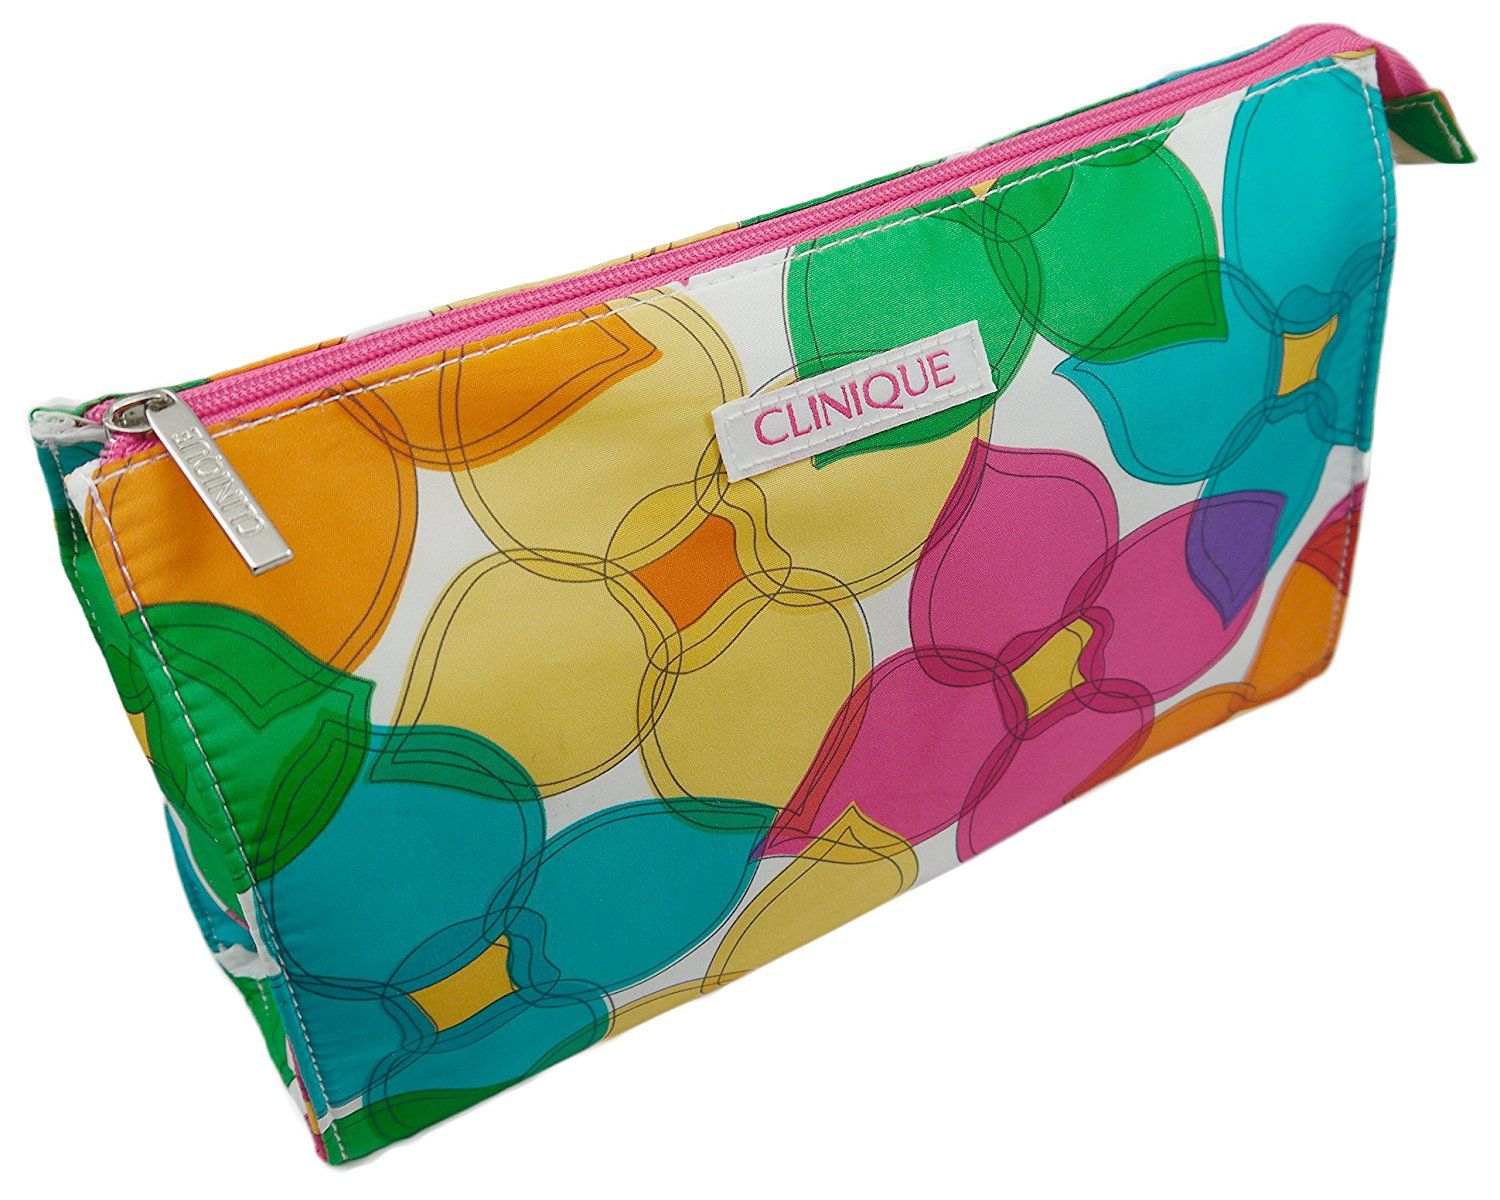 Clinique Green Orange Pink Cosmetic Makeup Bag ** Check